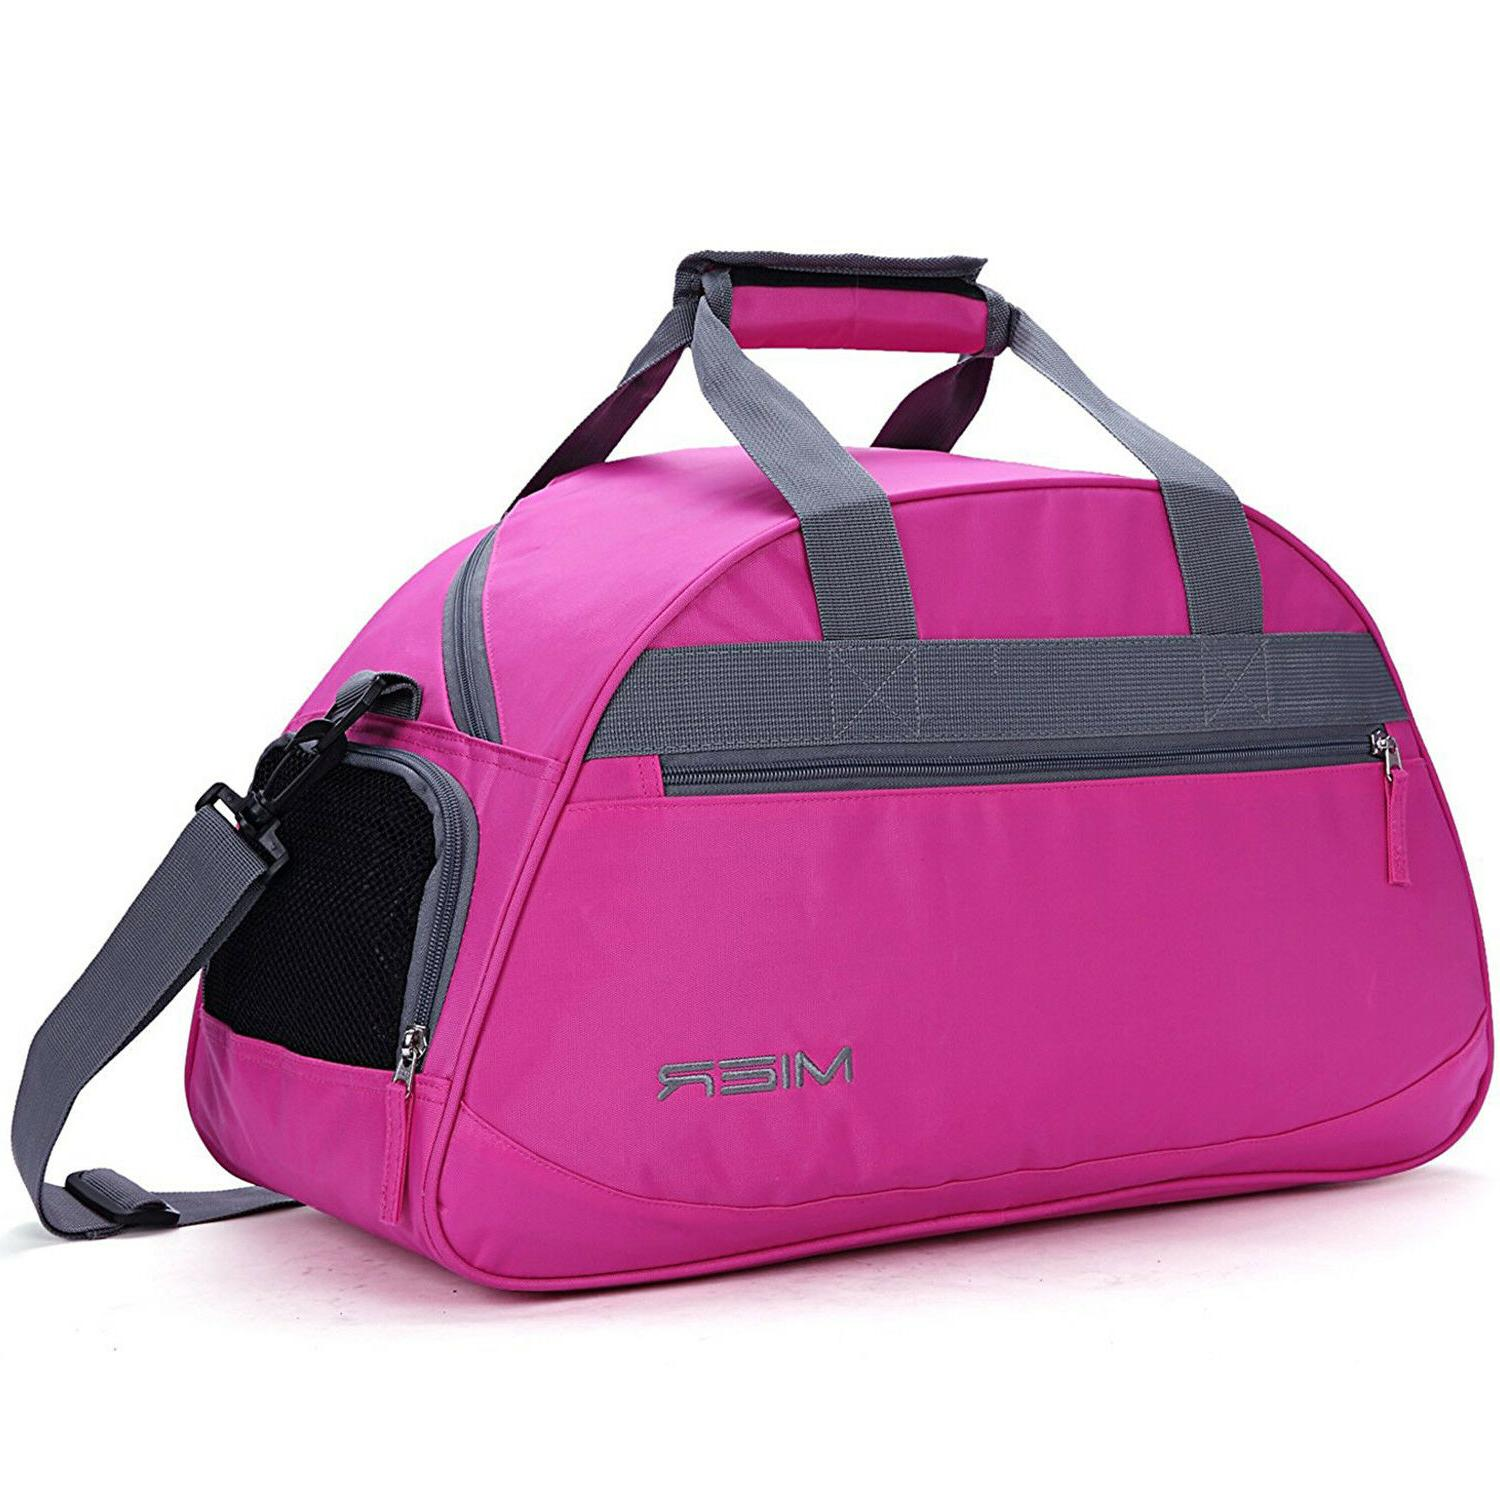 "Women's Sports Gym Bag Travel Duffel Bag 20"" with Shoes Comp"